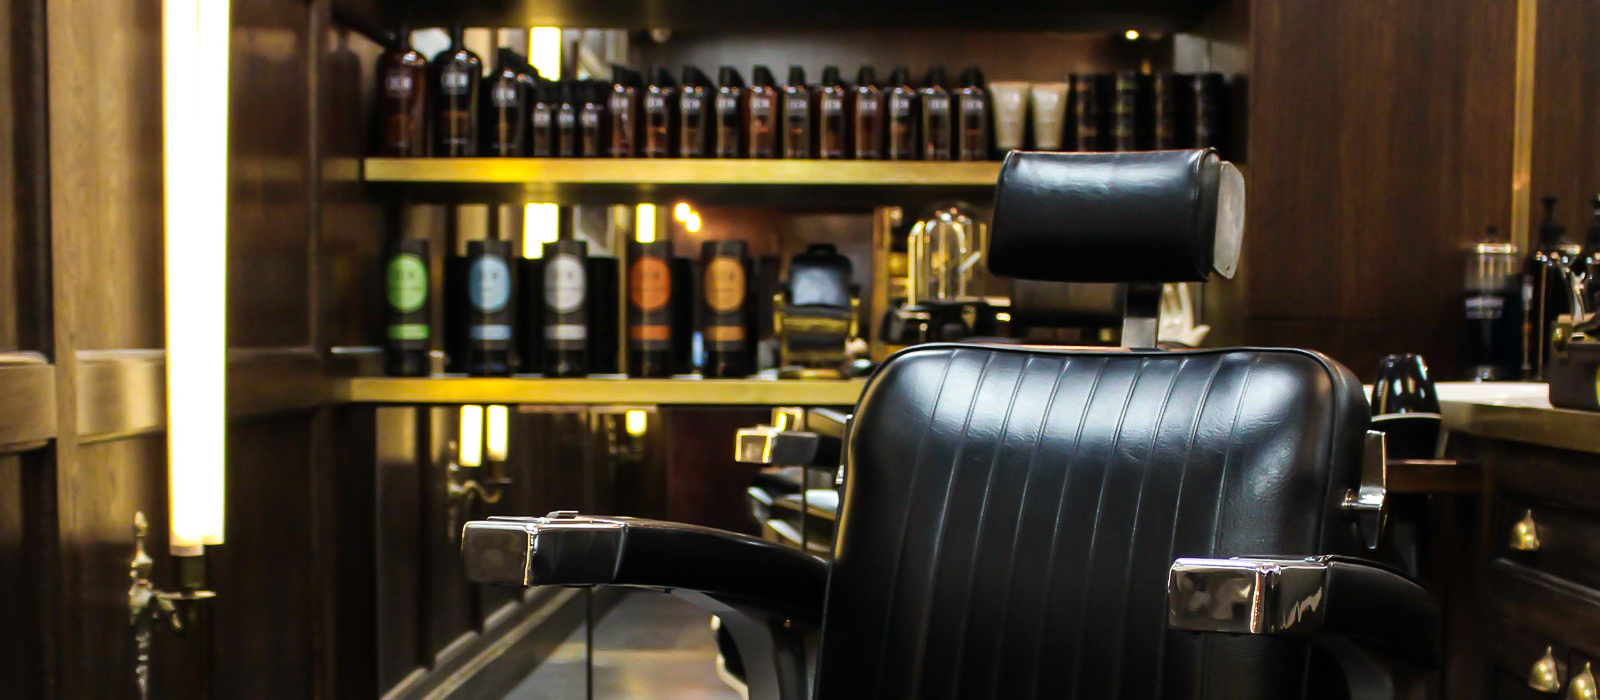 https://www.portersbarbers.co.uk/wp-content/uploads/Dulwich-Village-Porters-Barbers-Interior-5-3.jpg